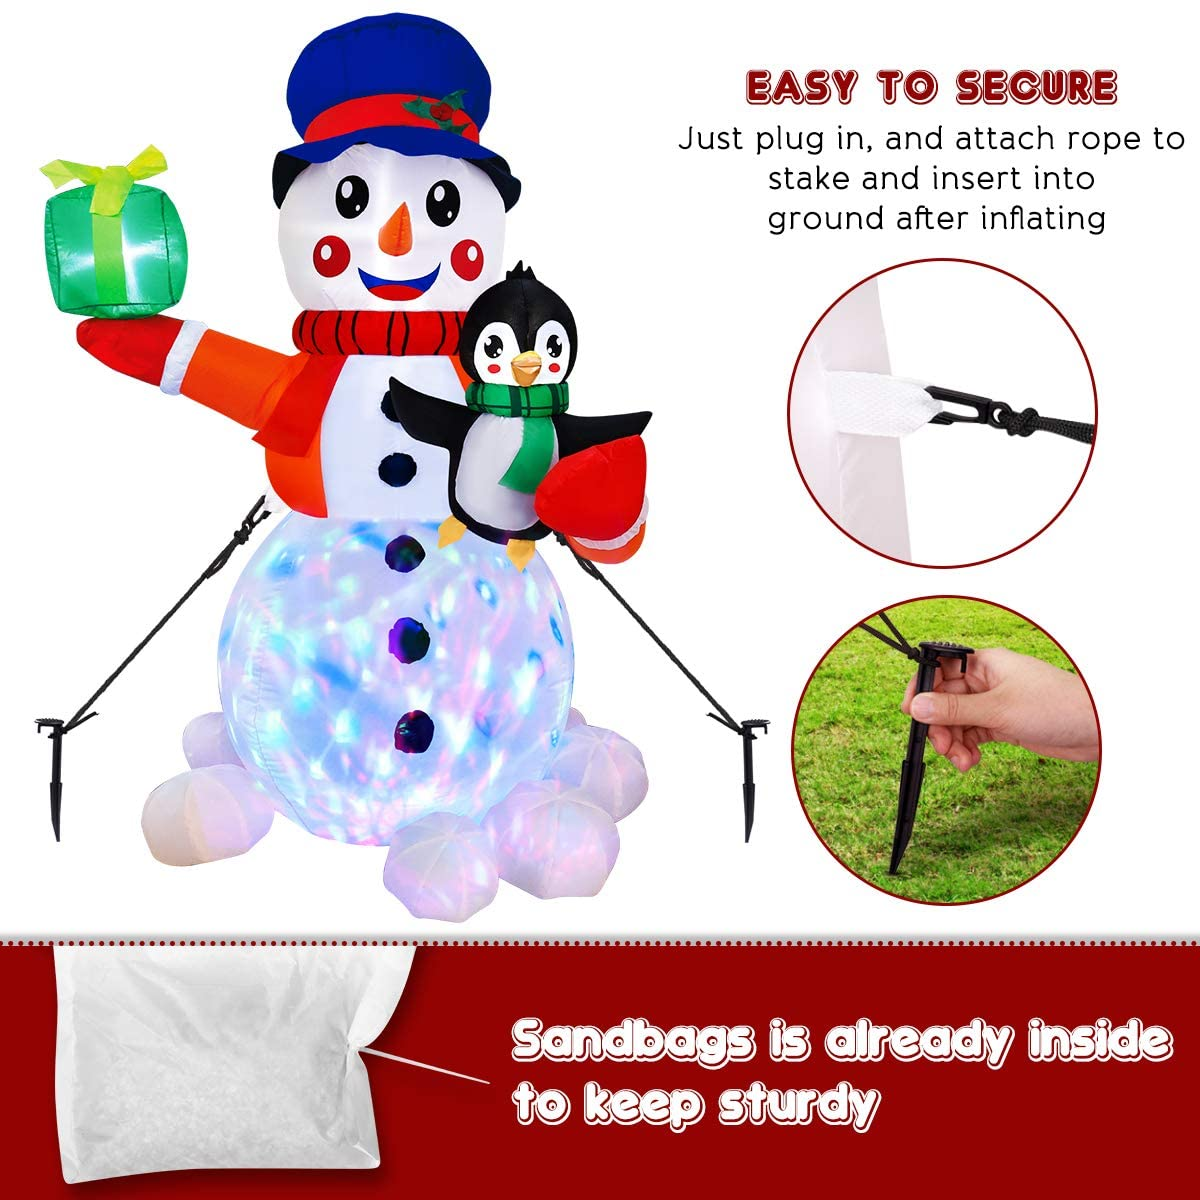 LED Light Inflatable Decor, Christmas Blown Up Snowman with LED Light Ornament for Yard Park Party Decoration